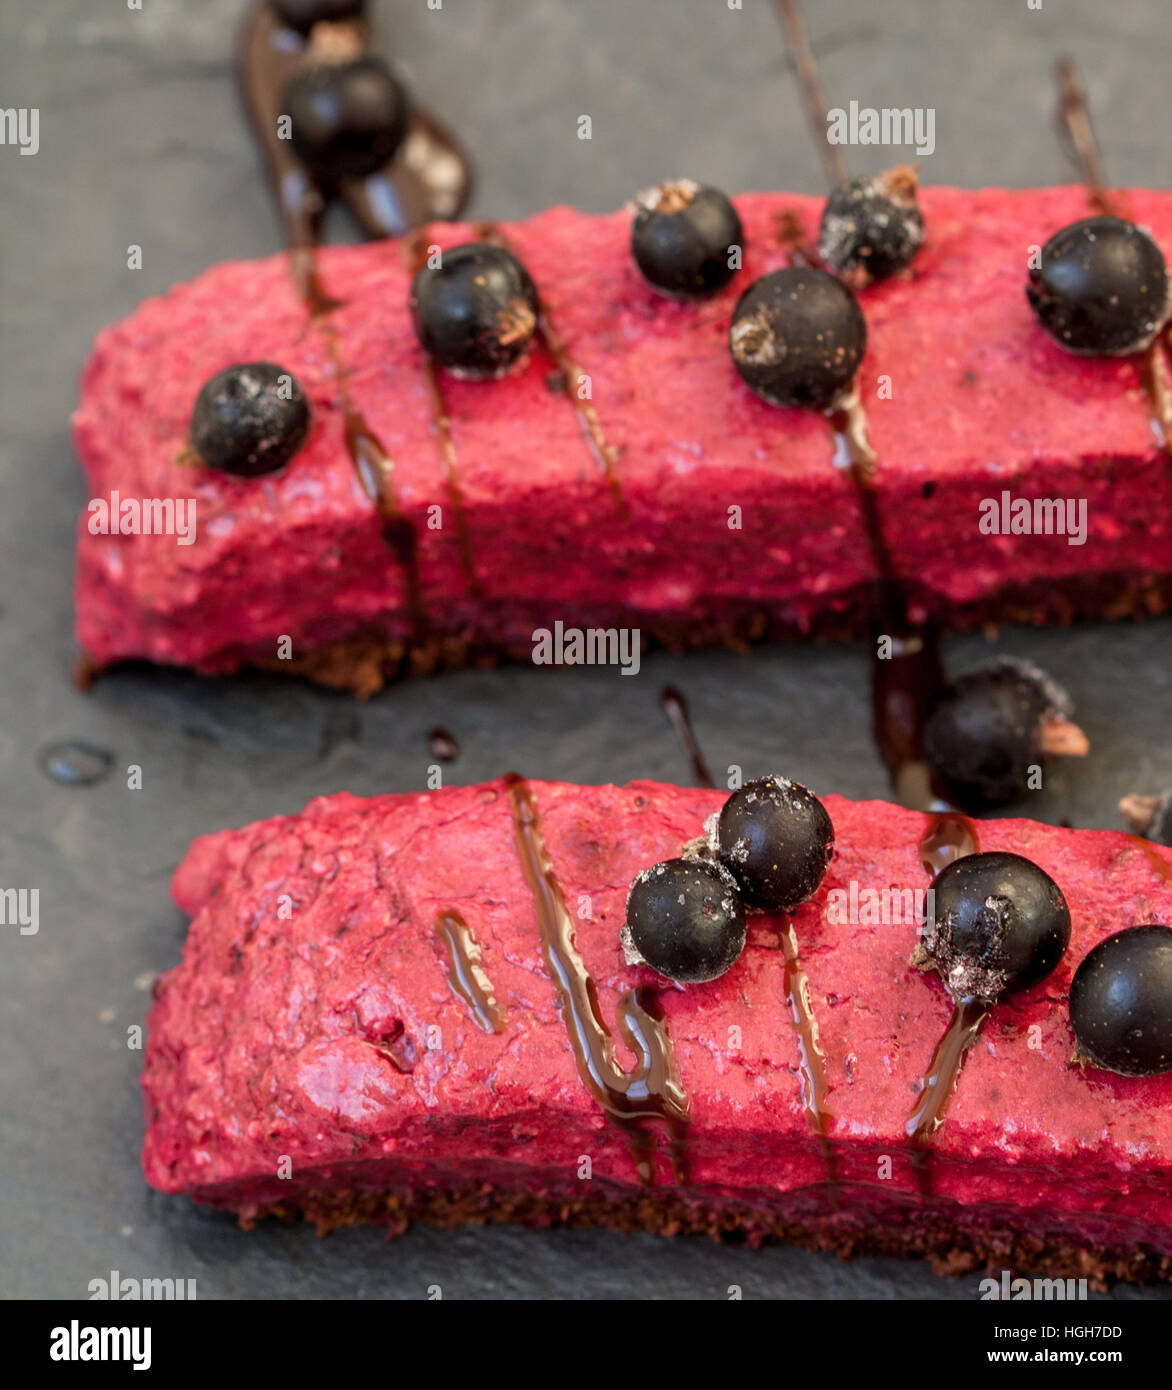 Raw chocolate berry cake with berries and chocolate syrup and currant.  Love for a healthy raw food concept. - Stock Image